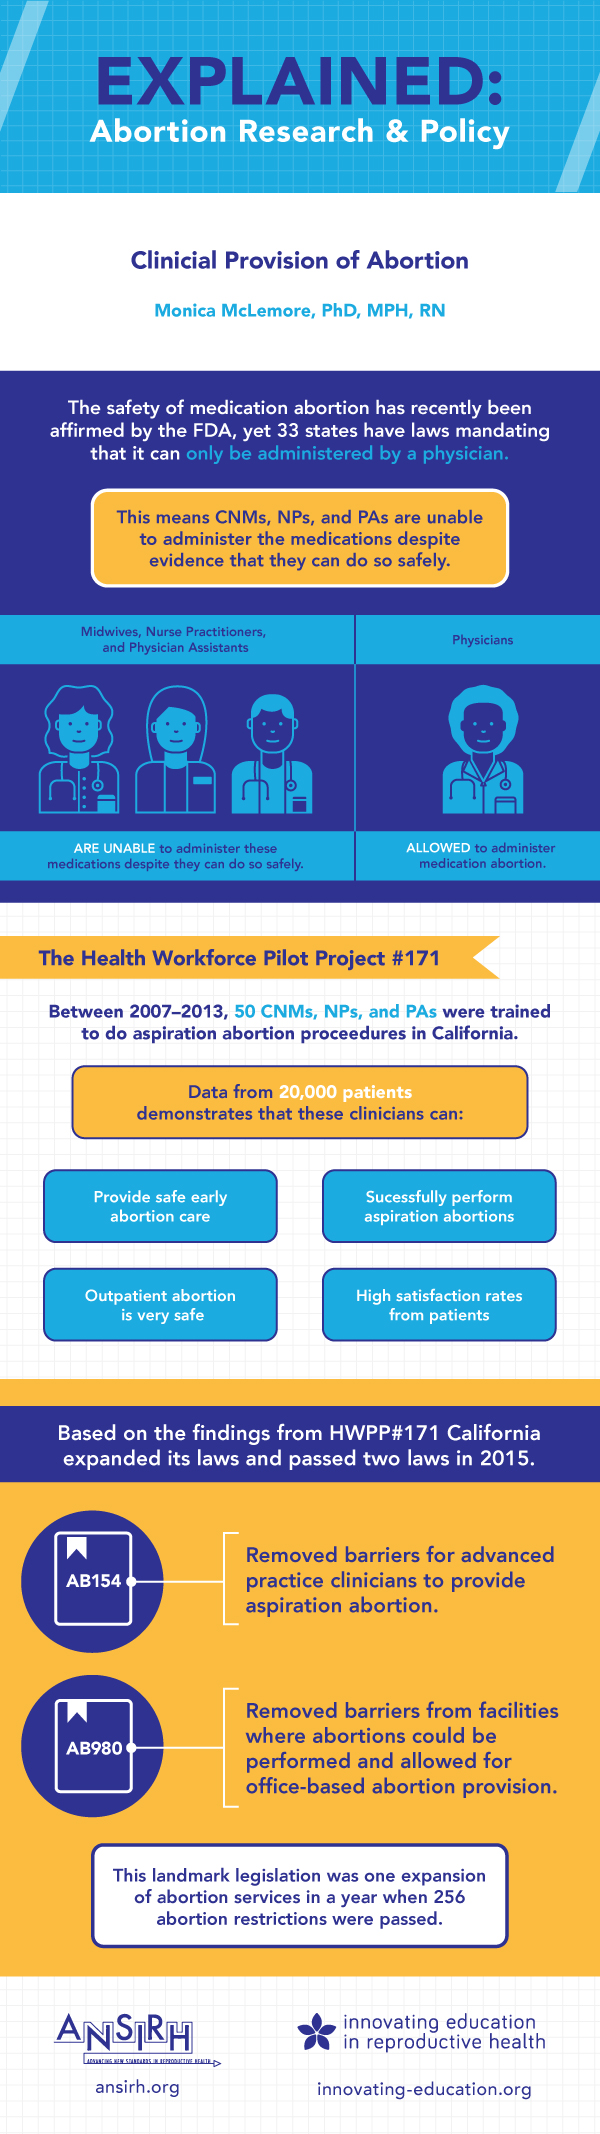 Infographic highlighting the impact of abortion restrictions on women and providers in the United States.